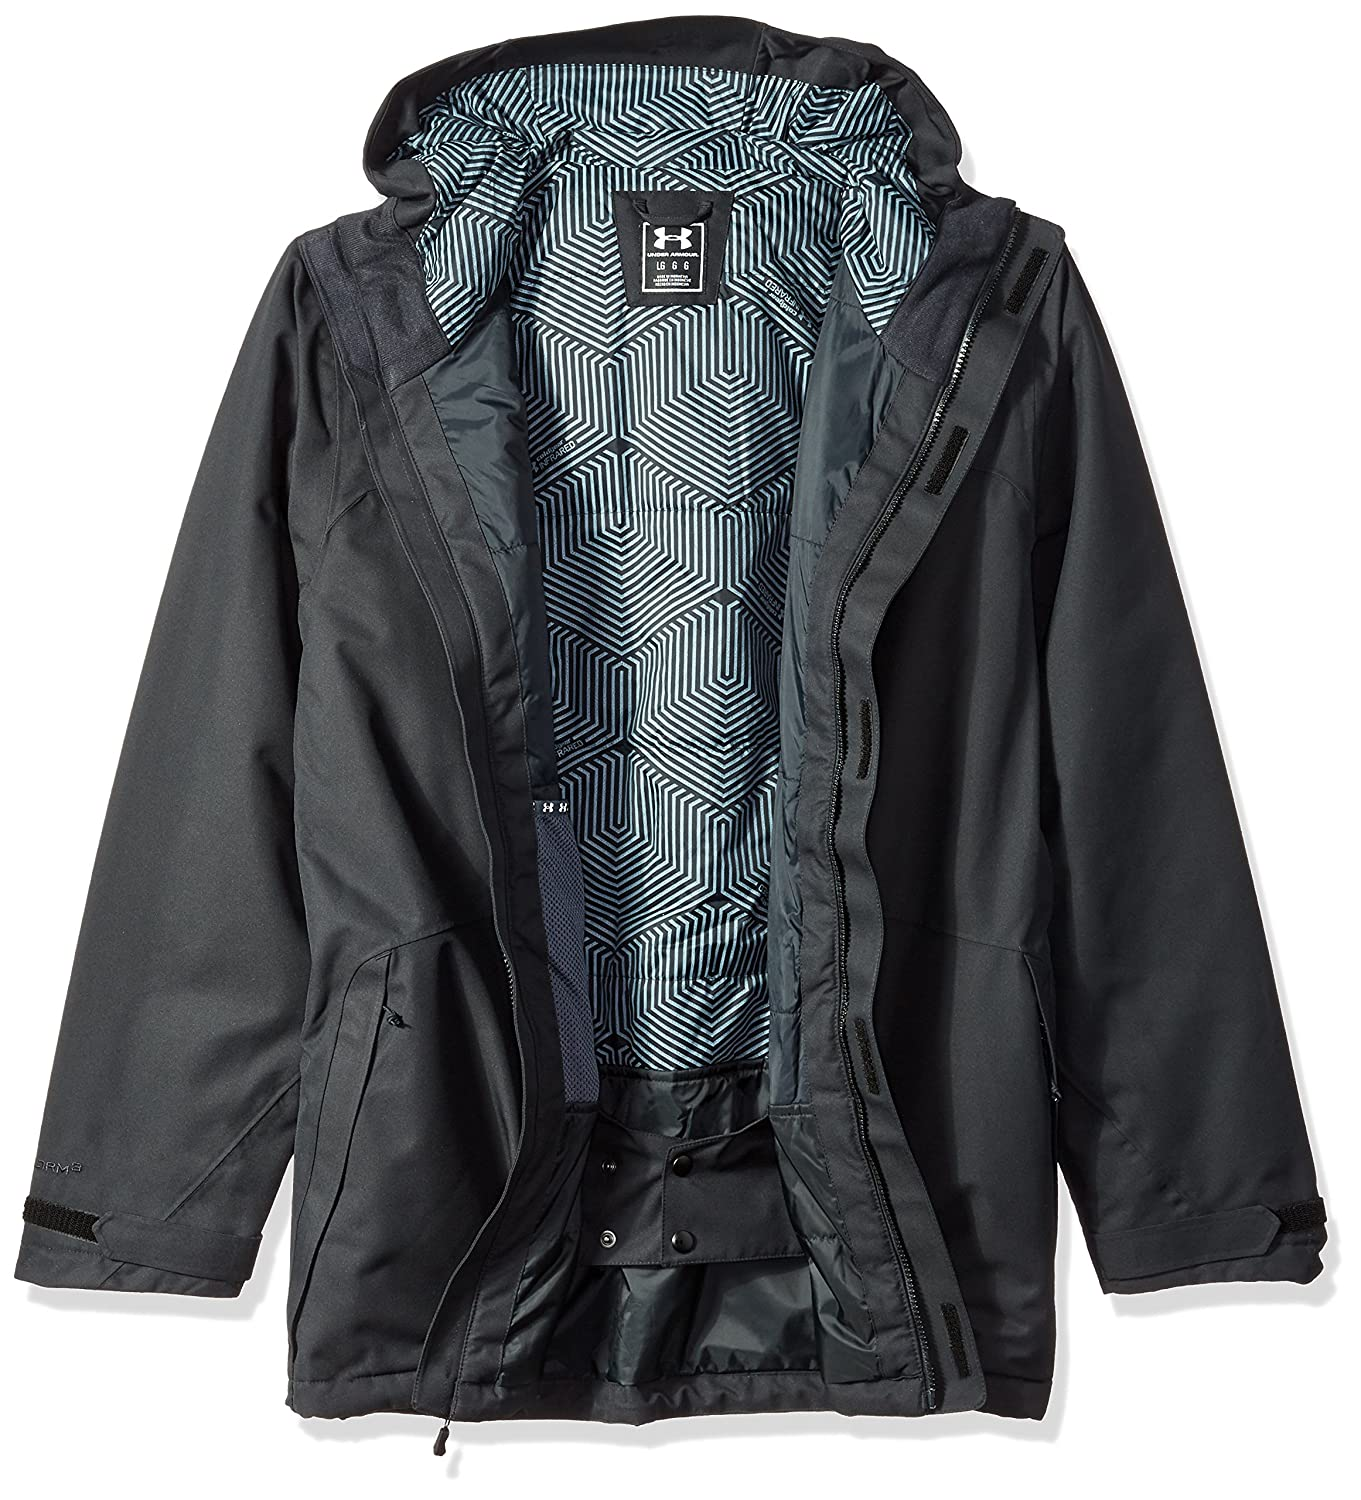 49d681c7a Amazon.com: Under Armour Men's Storm Powerline Insulated Jacket: Clothing